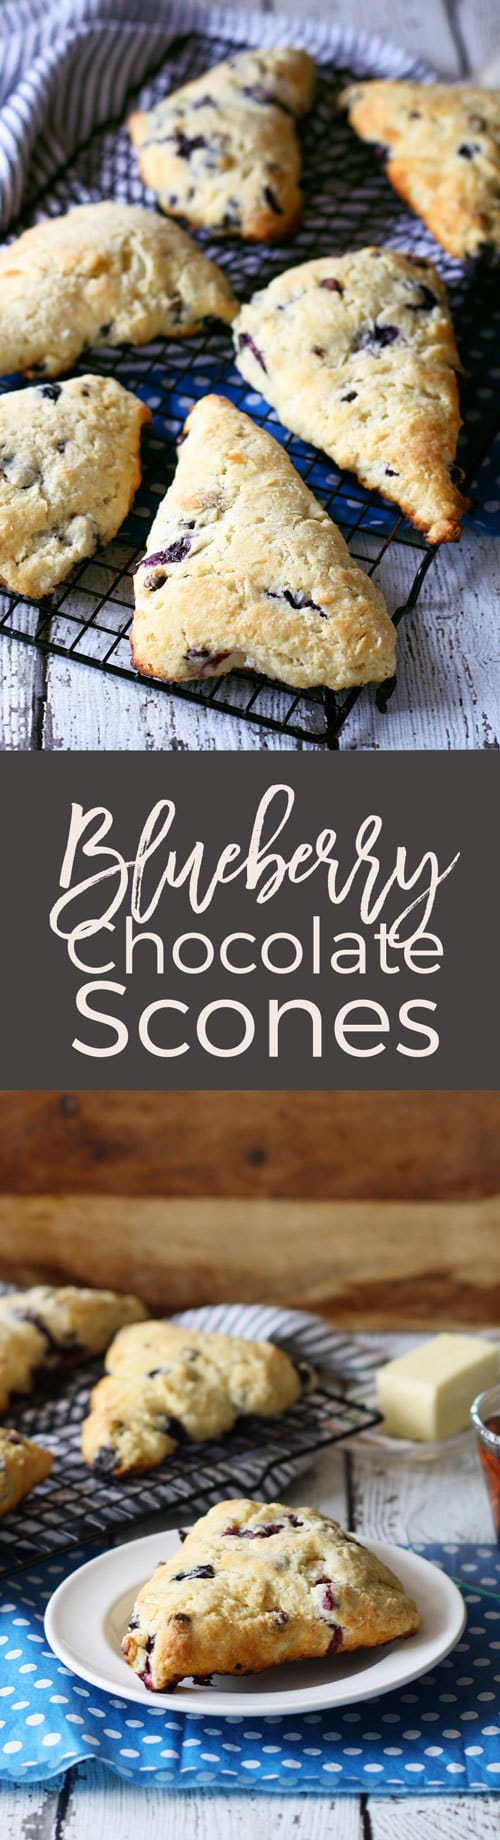 There's nothing better than morning's with a great cup of coffee and a blueberry chocolate scone. | honeyandbirch.com